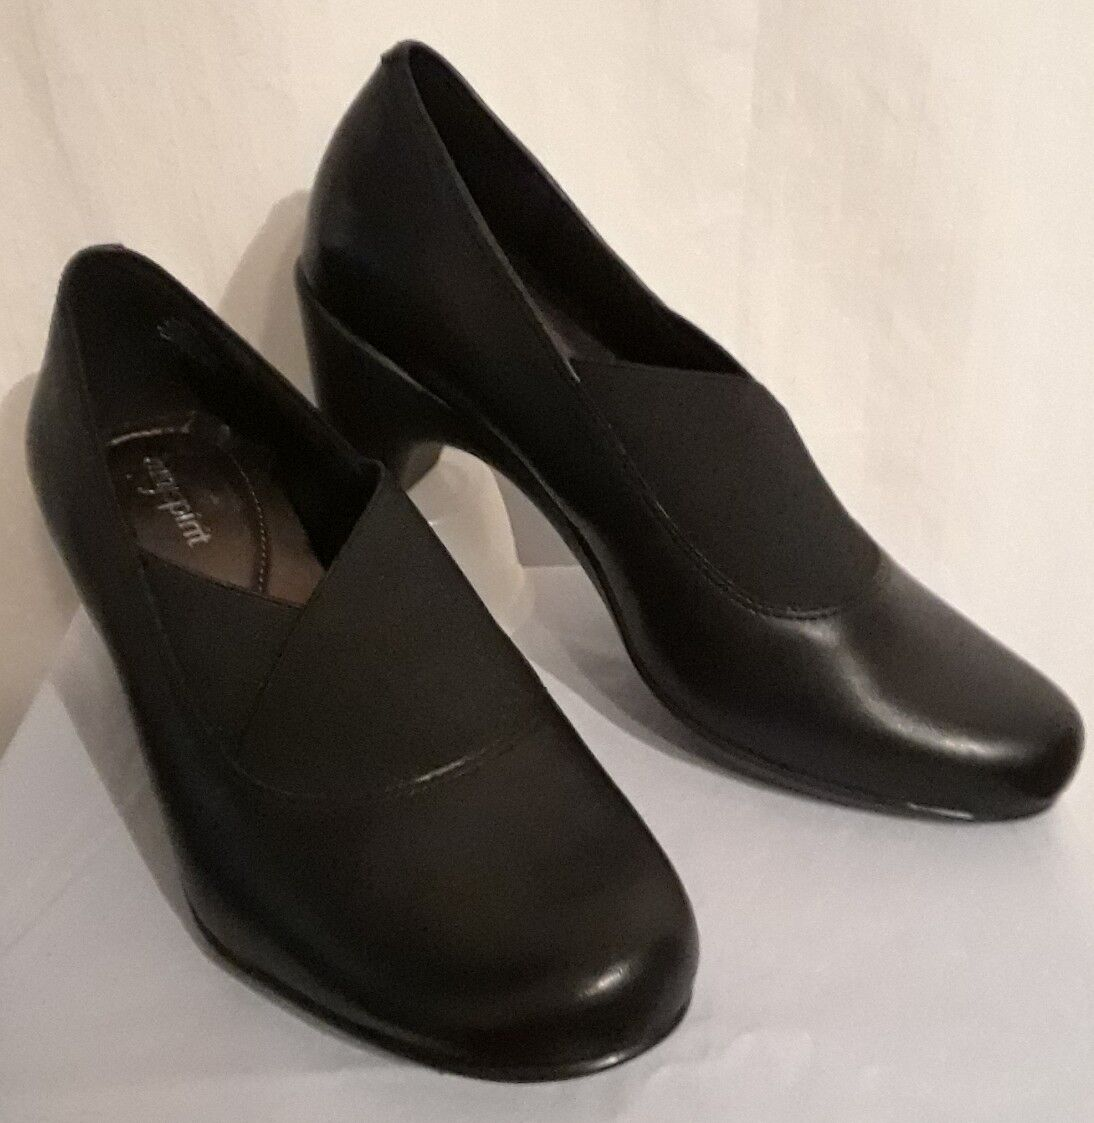 NWB Easy Spirit Catava Slip On Black Leather Medium Heel Pump shoes size 7.5